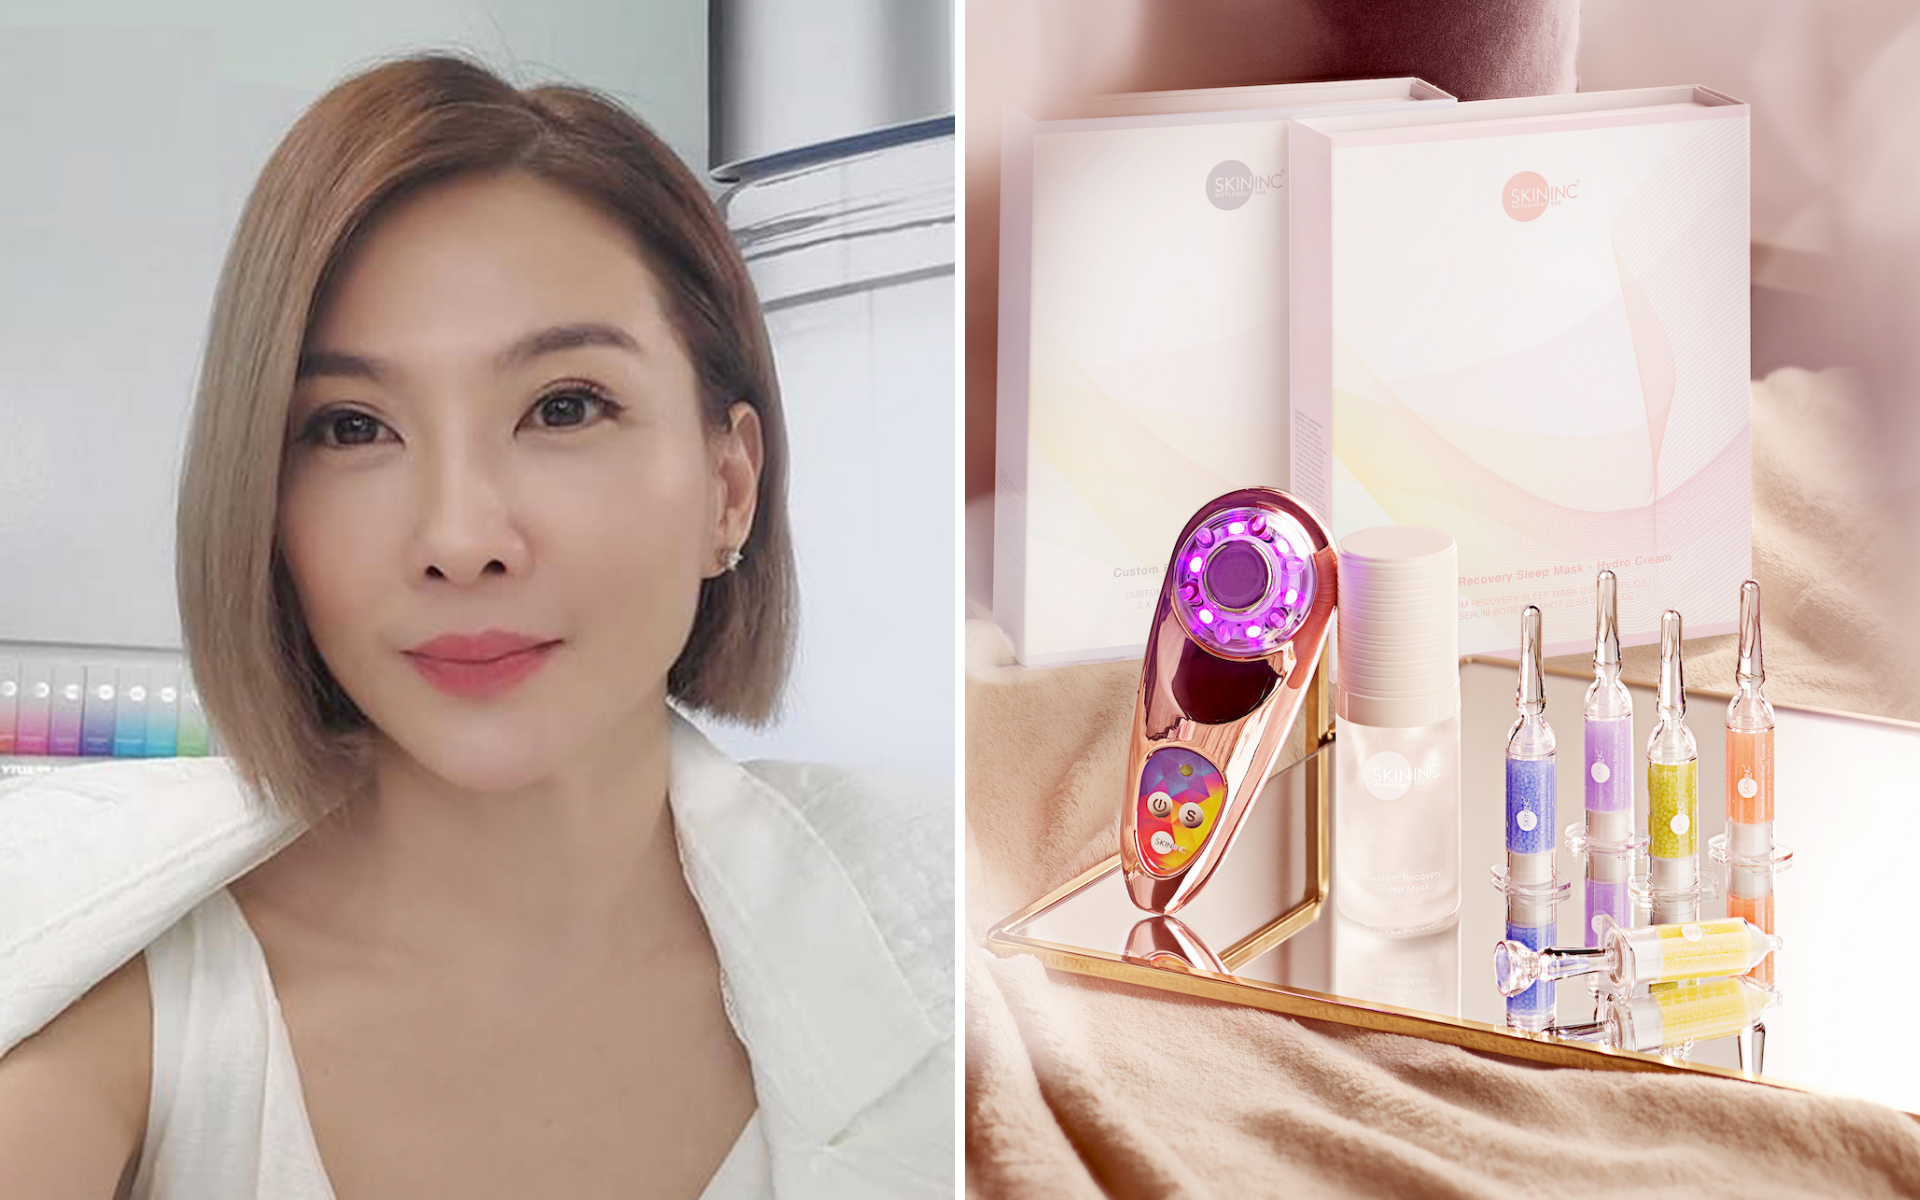 Founder of Skin Inc Shakes Up The Beauty Industry With Personalised Skincare